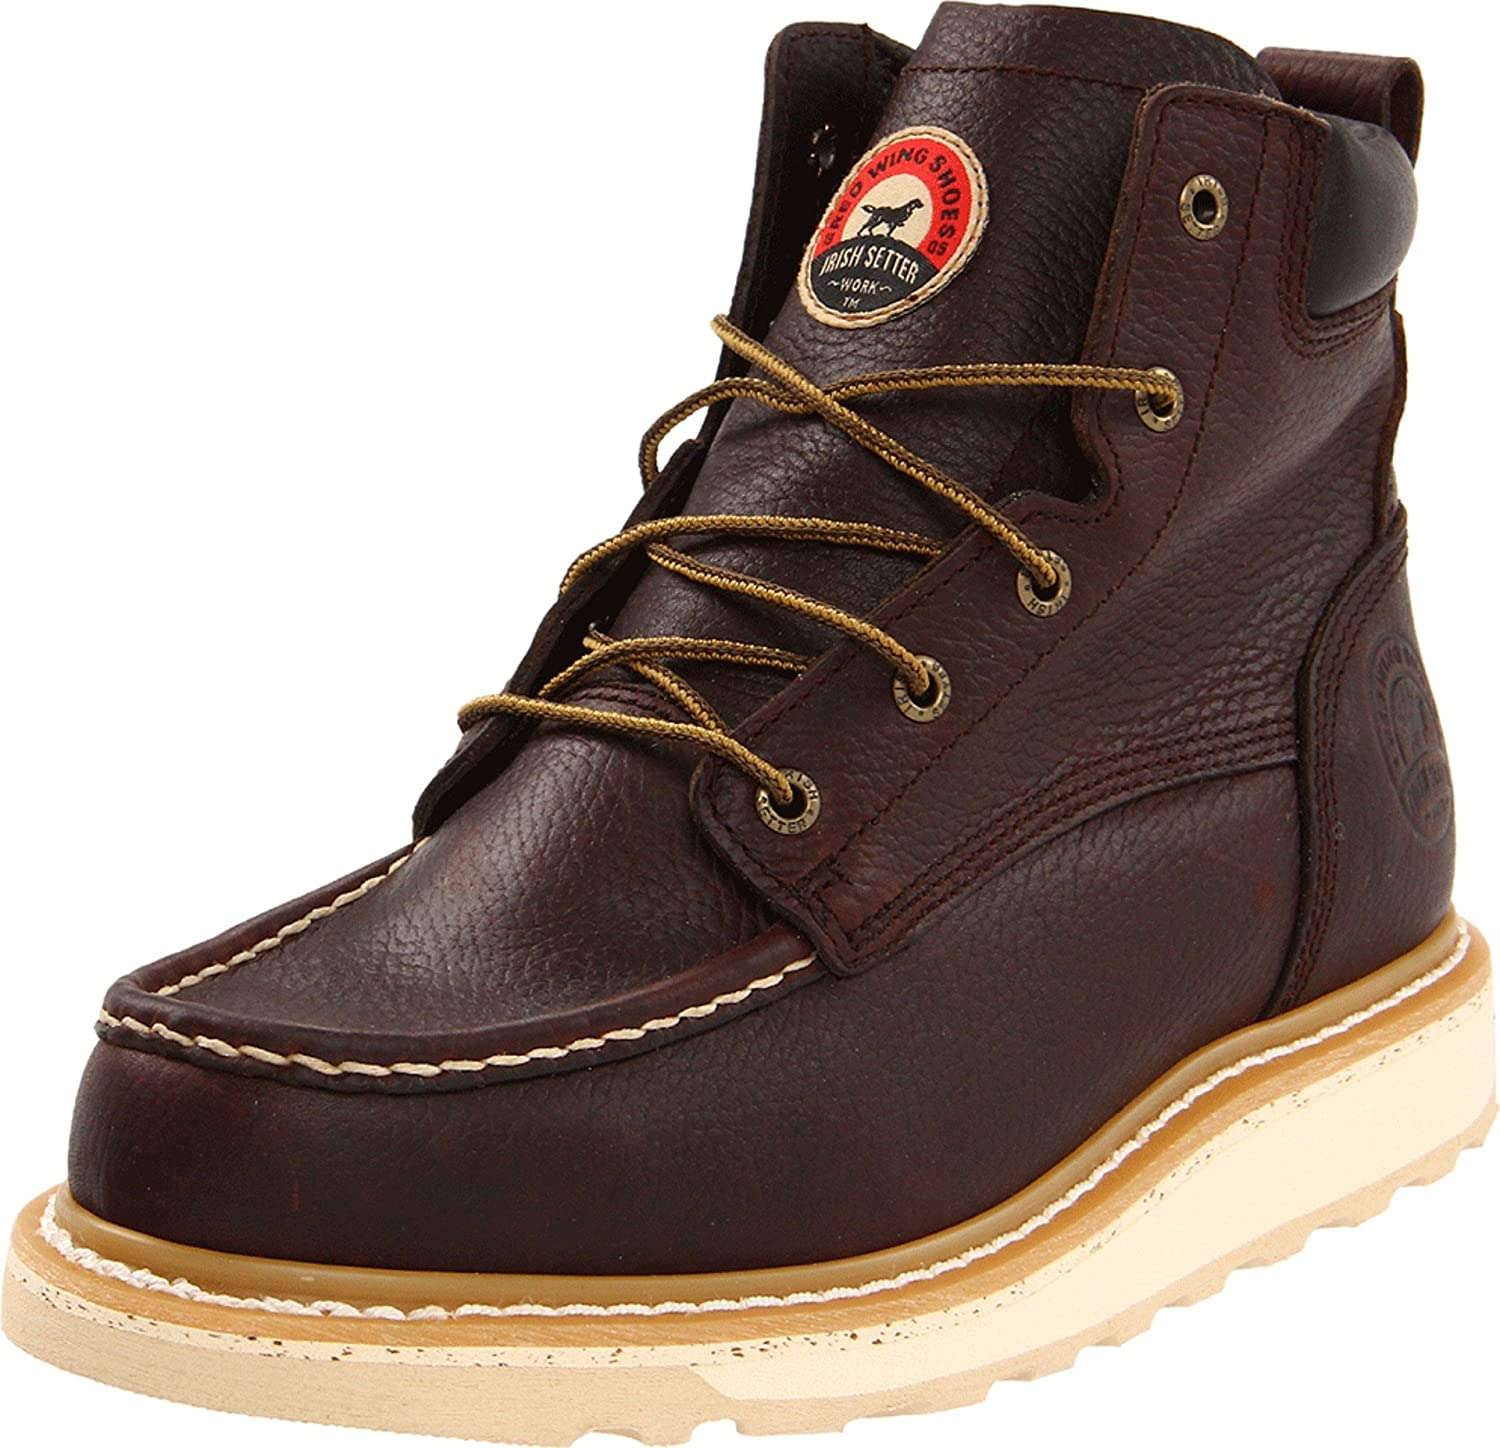 98a90f5082e Irish Setter Men's 6